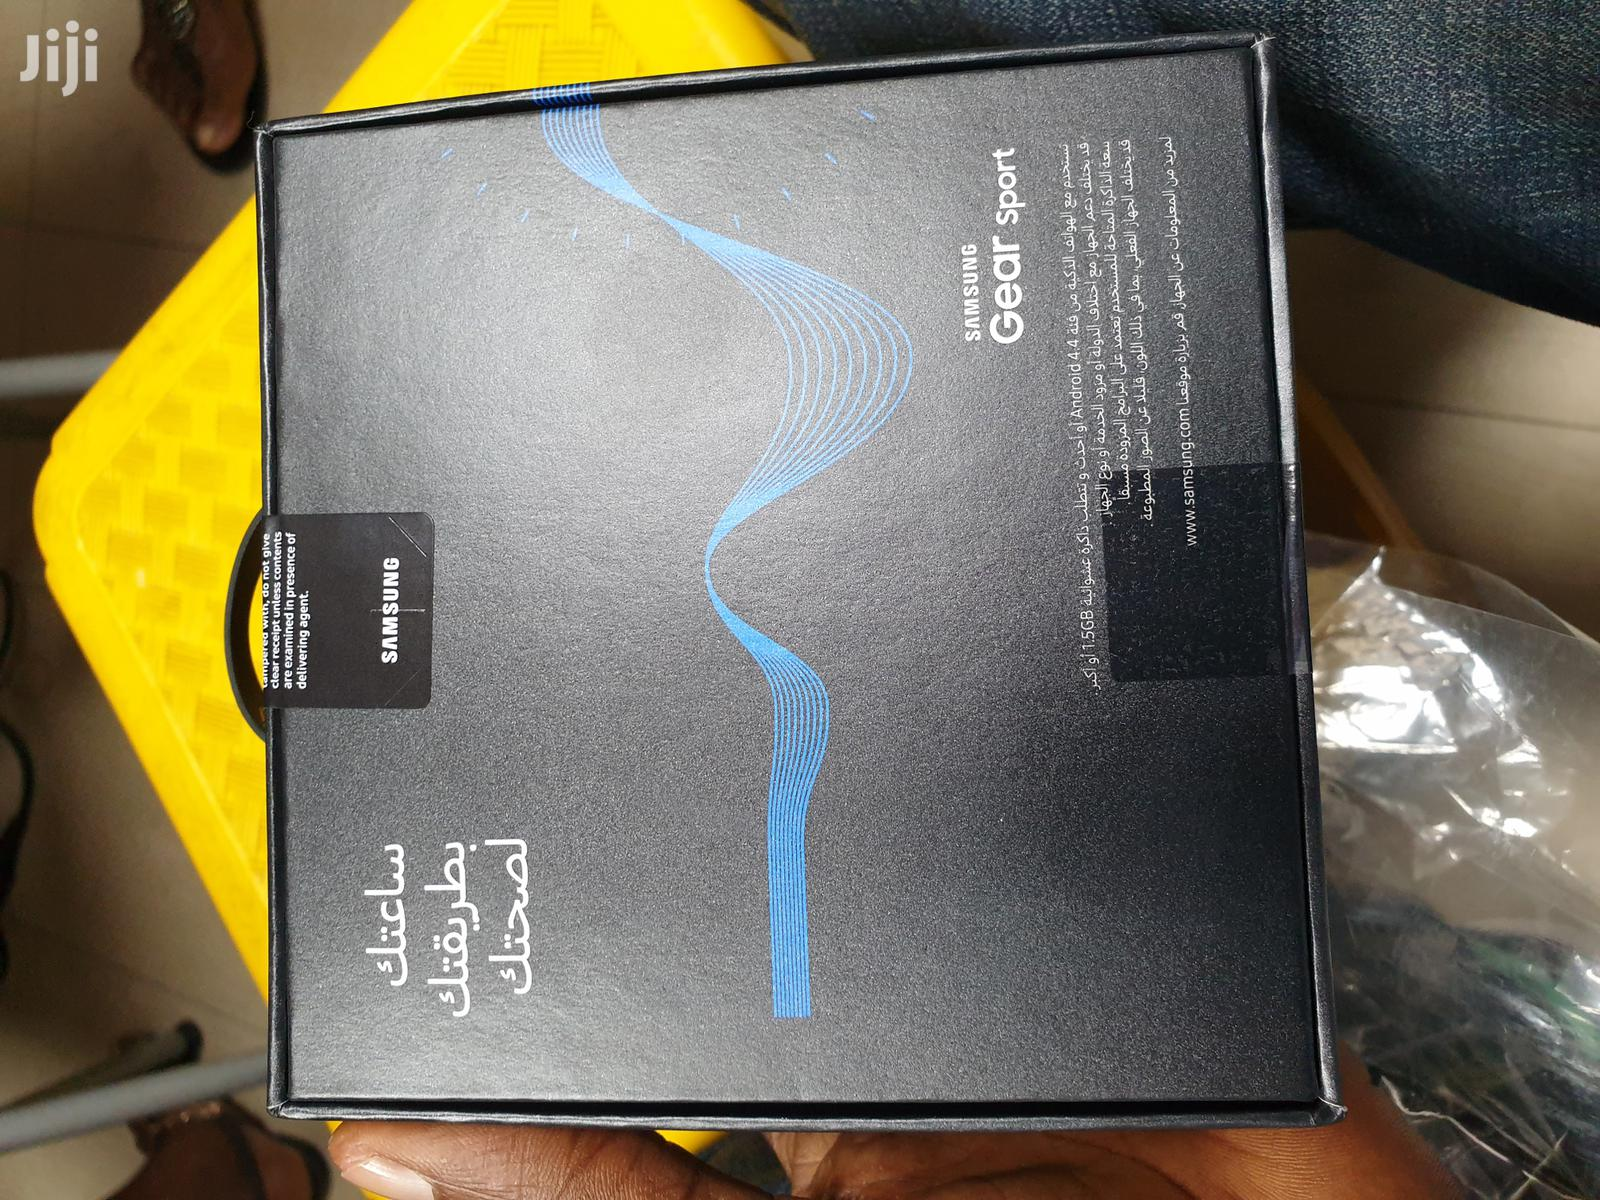 Brand New Samsung GALAXY Gear Sport R600 | Smart Watches & Trackers for sale in Ikeja, Lagos State, Nigeria